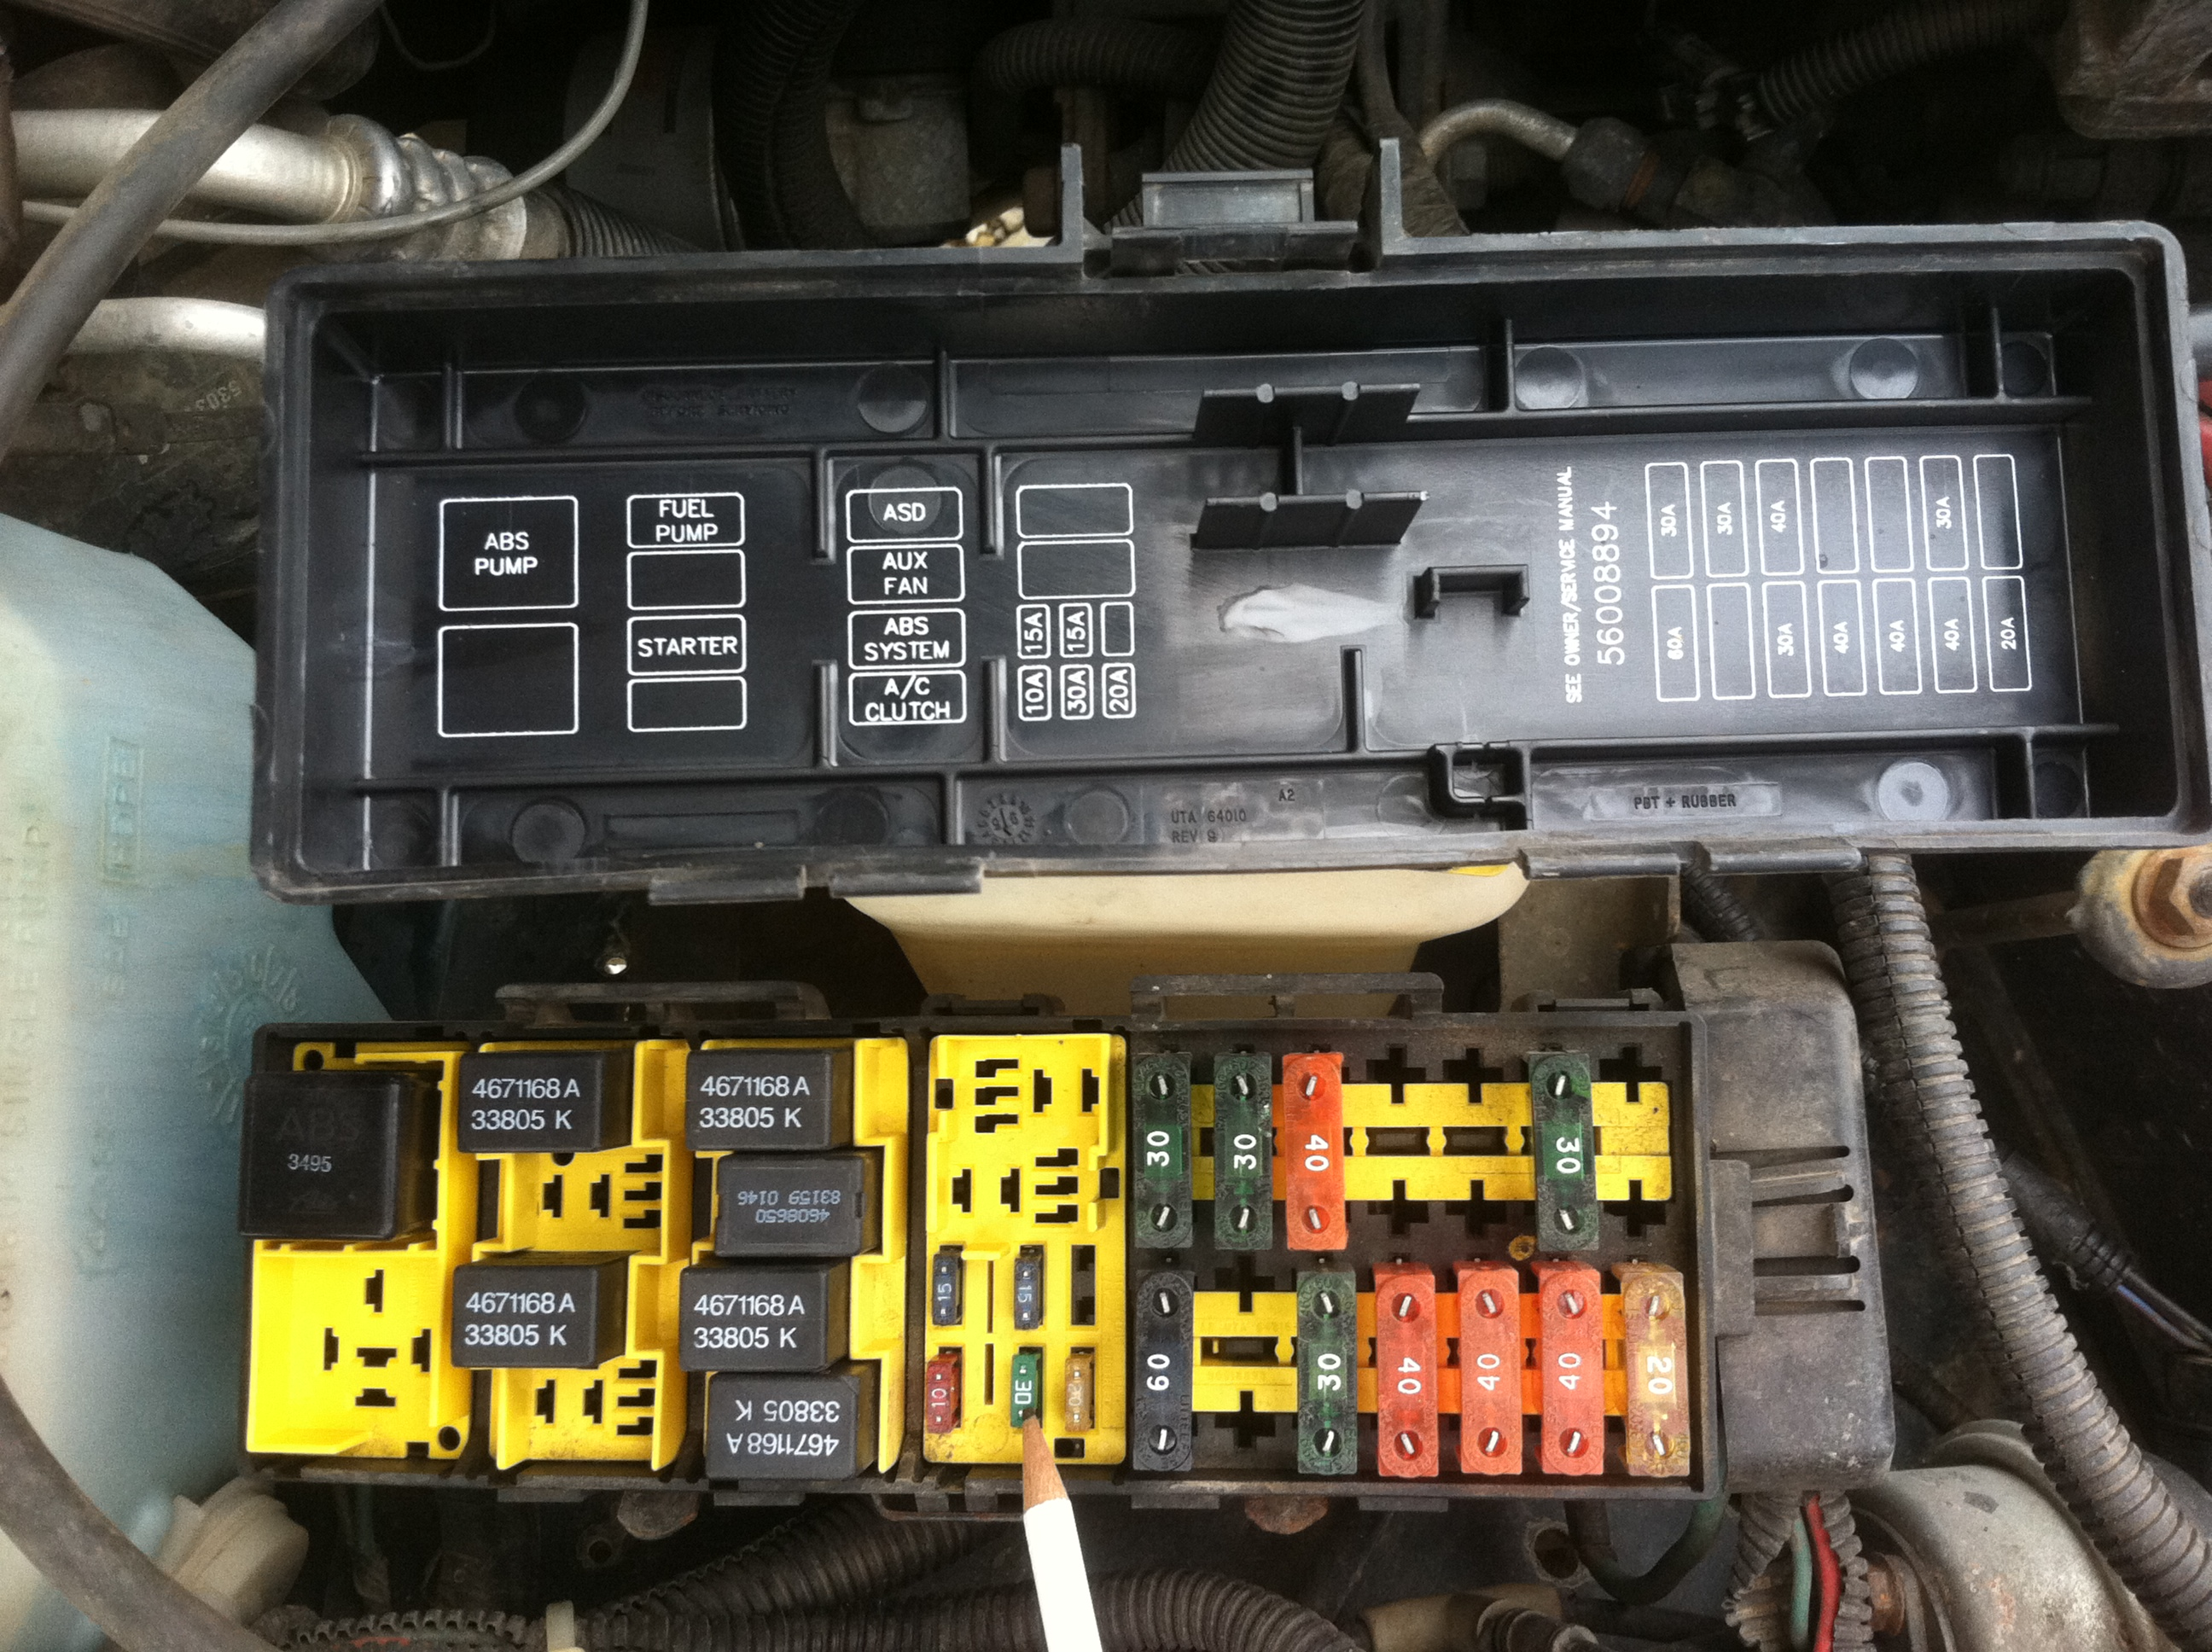 fuse box 96 jeep cherokee wiring diagrams best jeep cherokee i have a 1996 jeep cherokee sport xj 4 door 2002 jeep cherokee fuse box fuse box 96 jeep cherokee